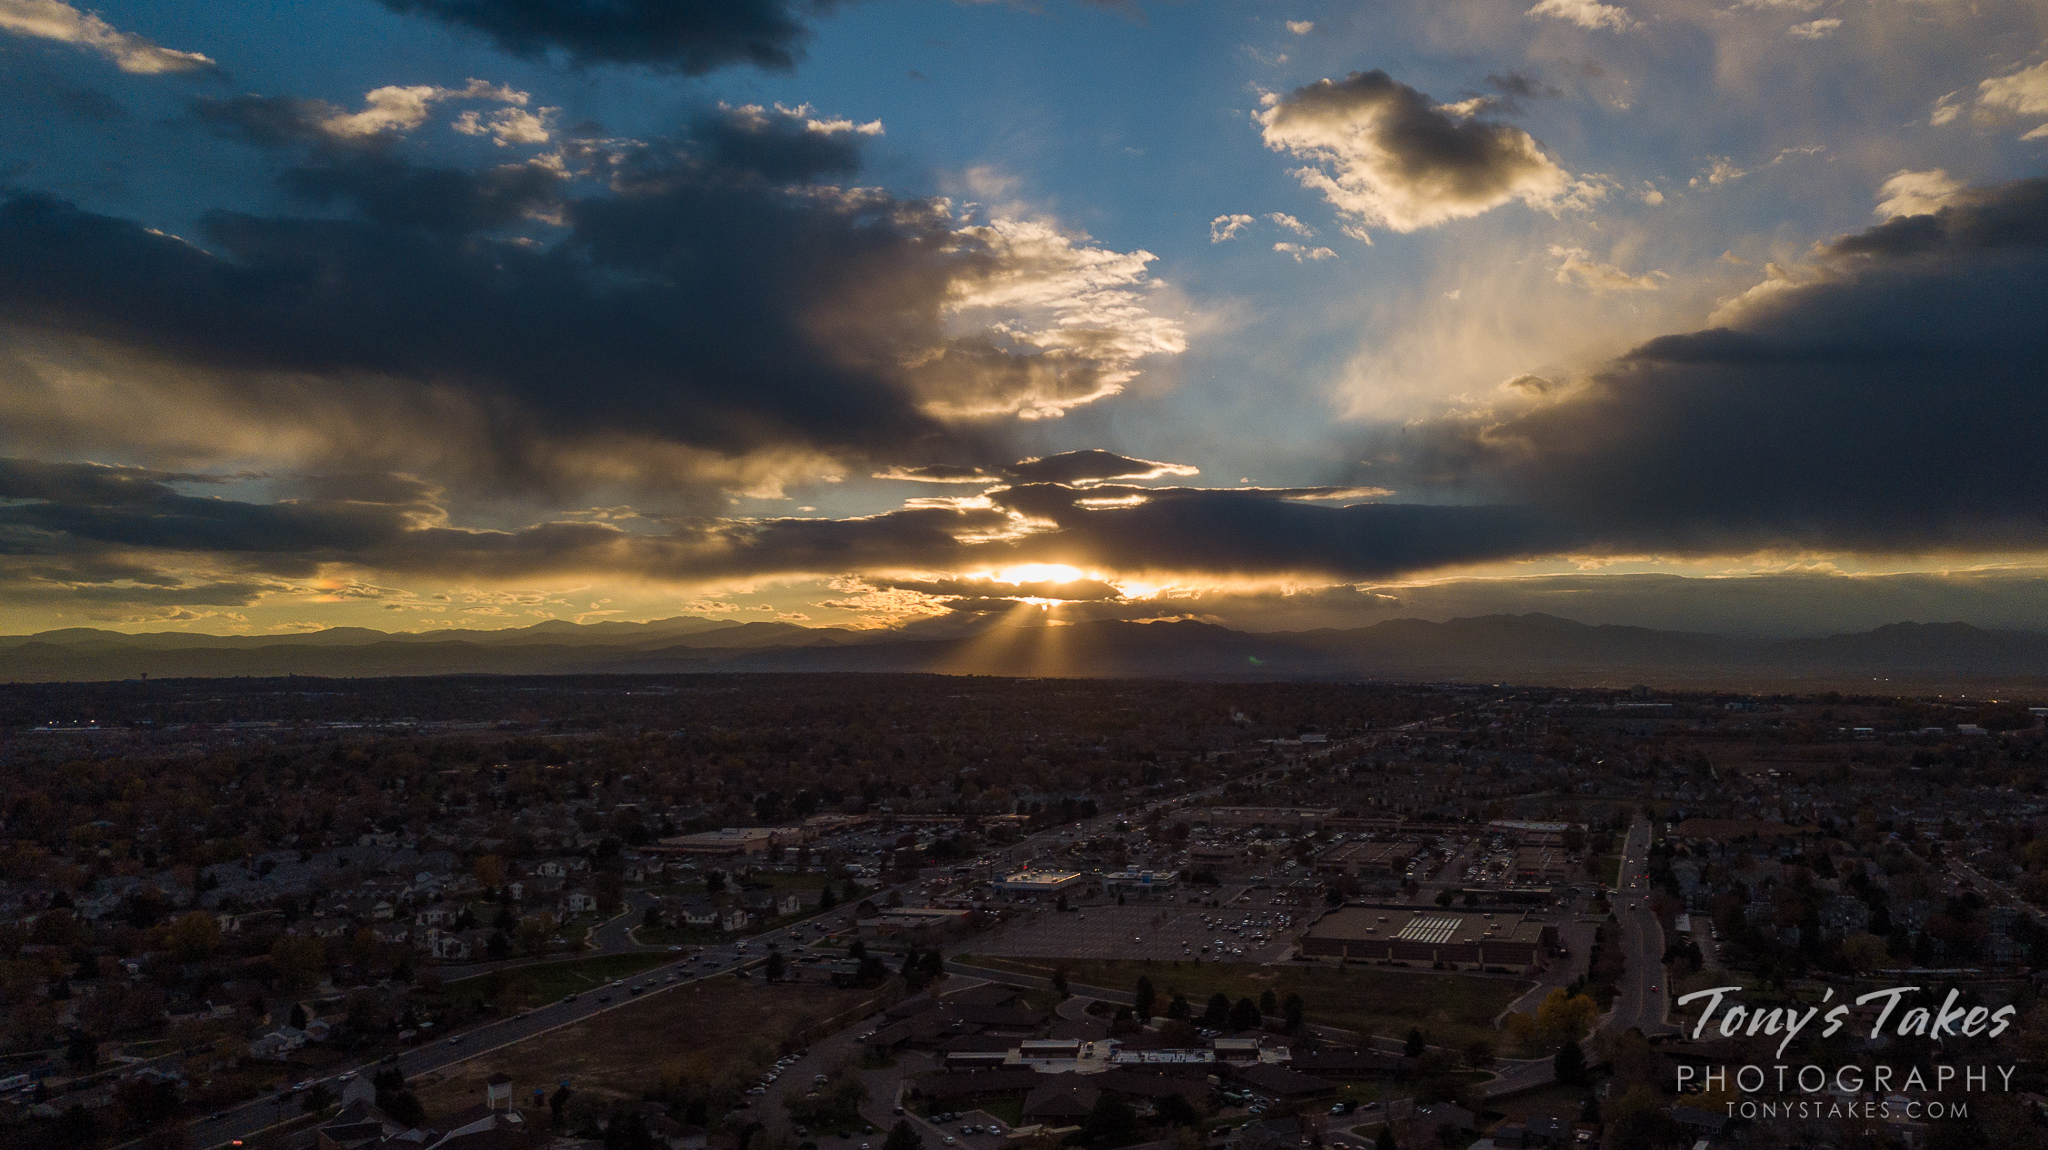 Quick drone flight captures the sunset